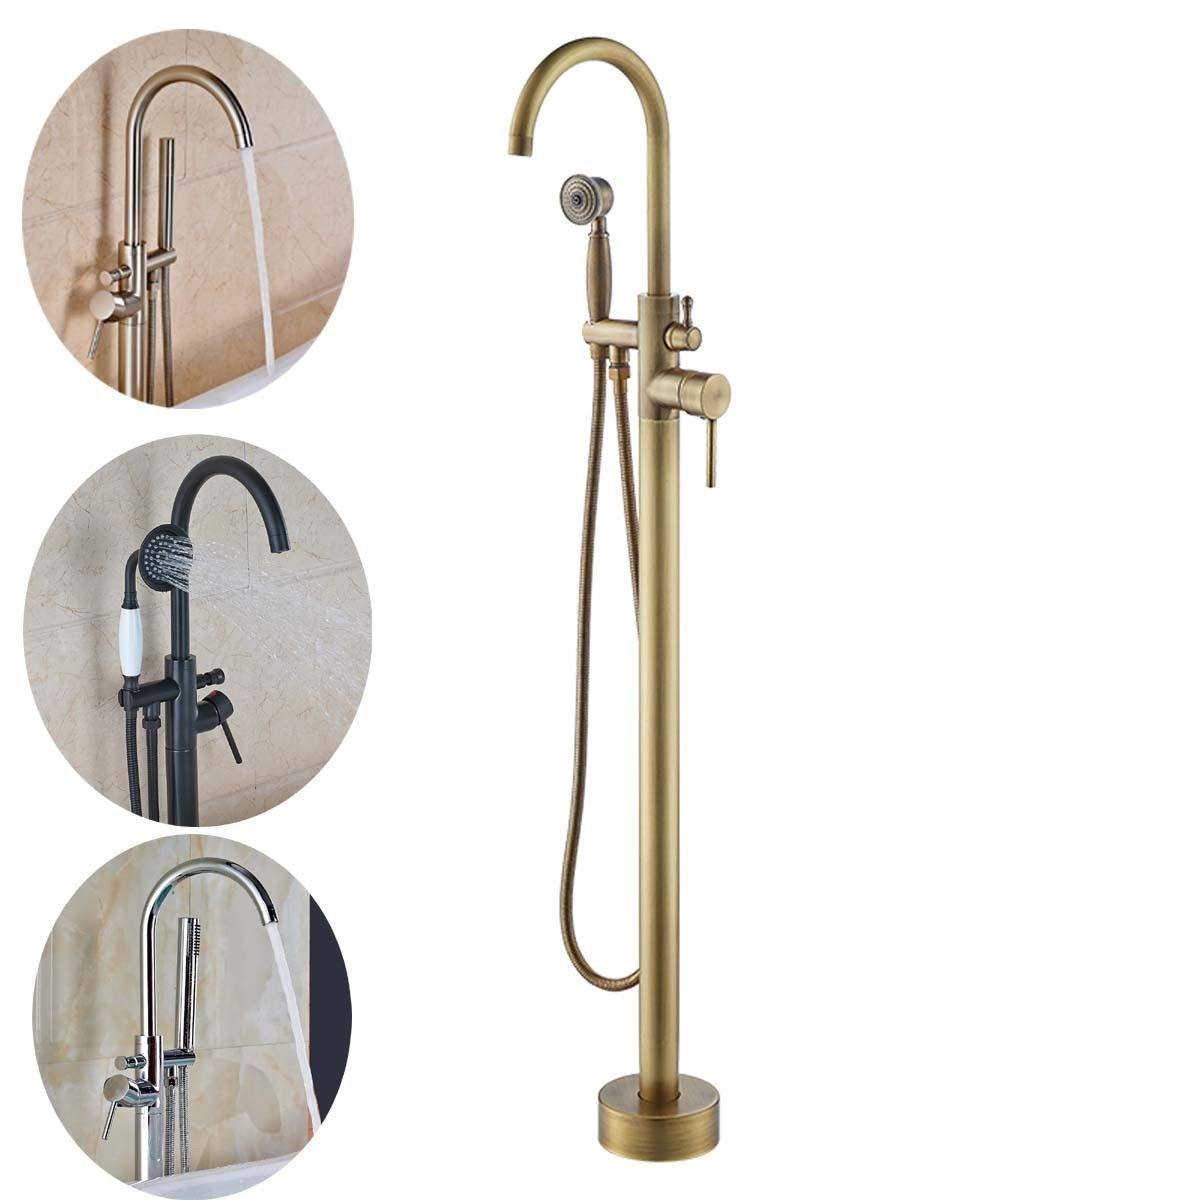 Gold/Chrome/Nickel/Antique/ORB High Rise Round Spout Bath Mixer Tap Floor Mounted anon маска сноубордическая anon somerset pellow gold chrome